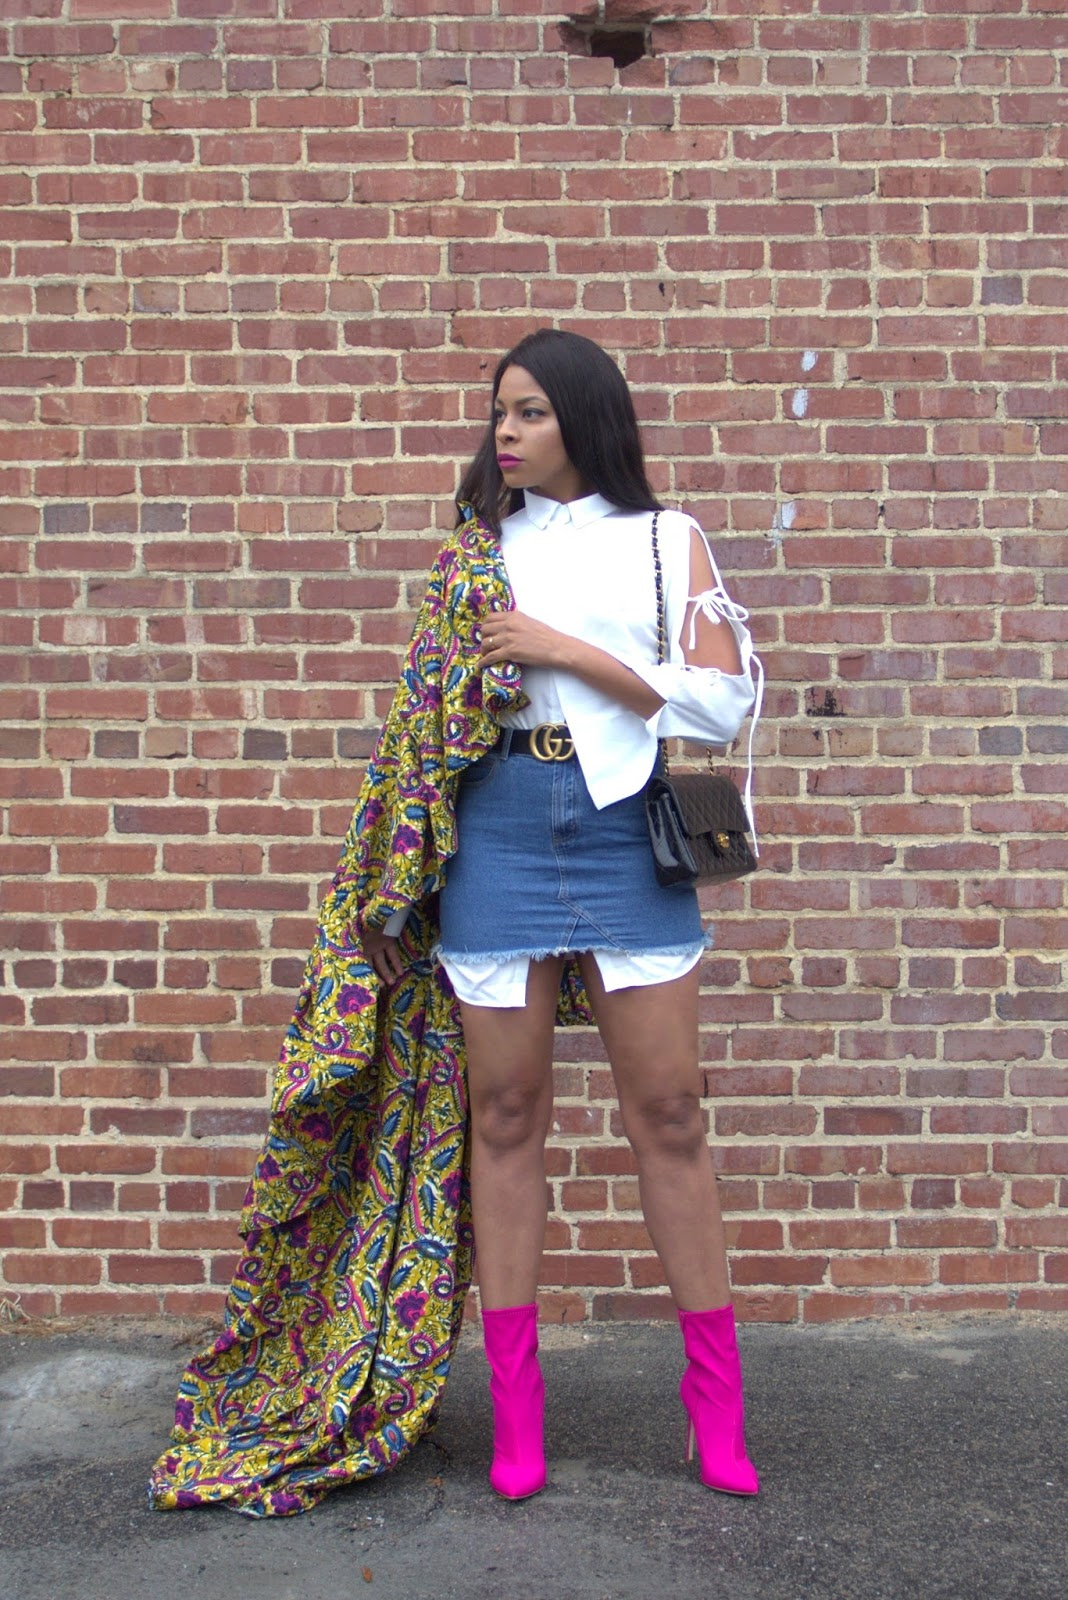 shayla greene, shayla drake, allthingsslim, black fashion blogger